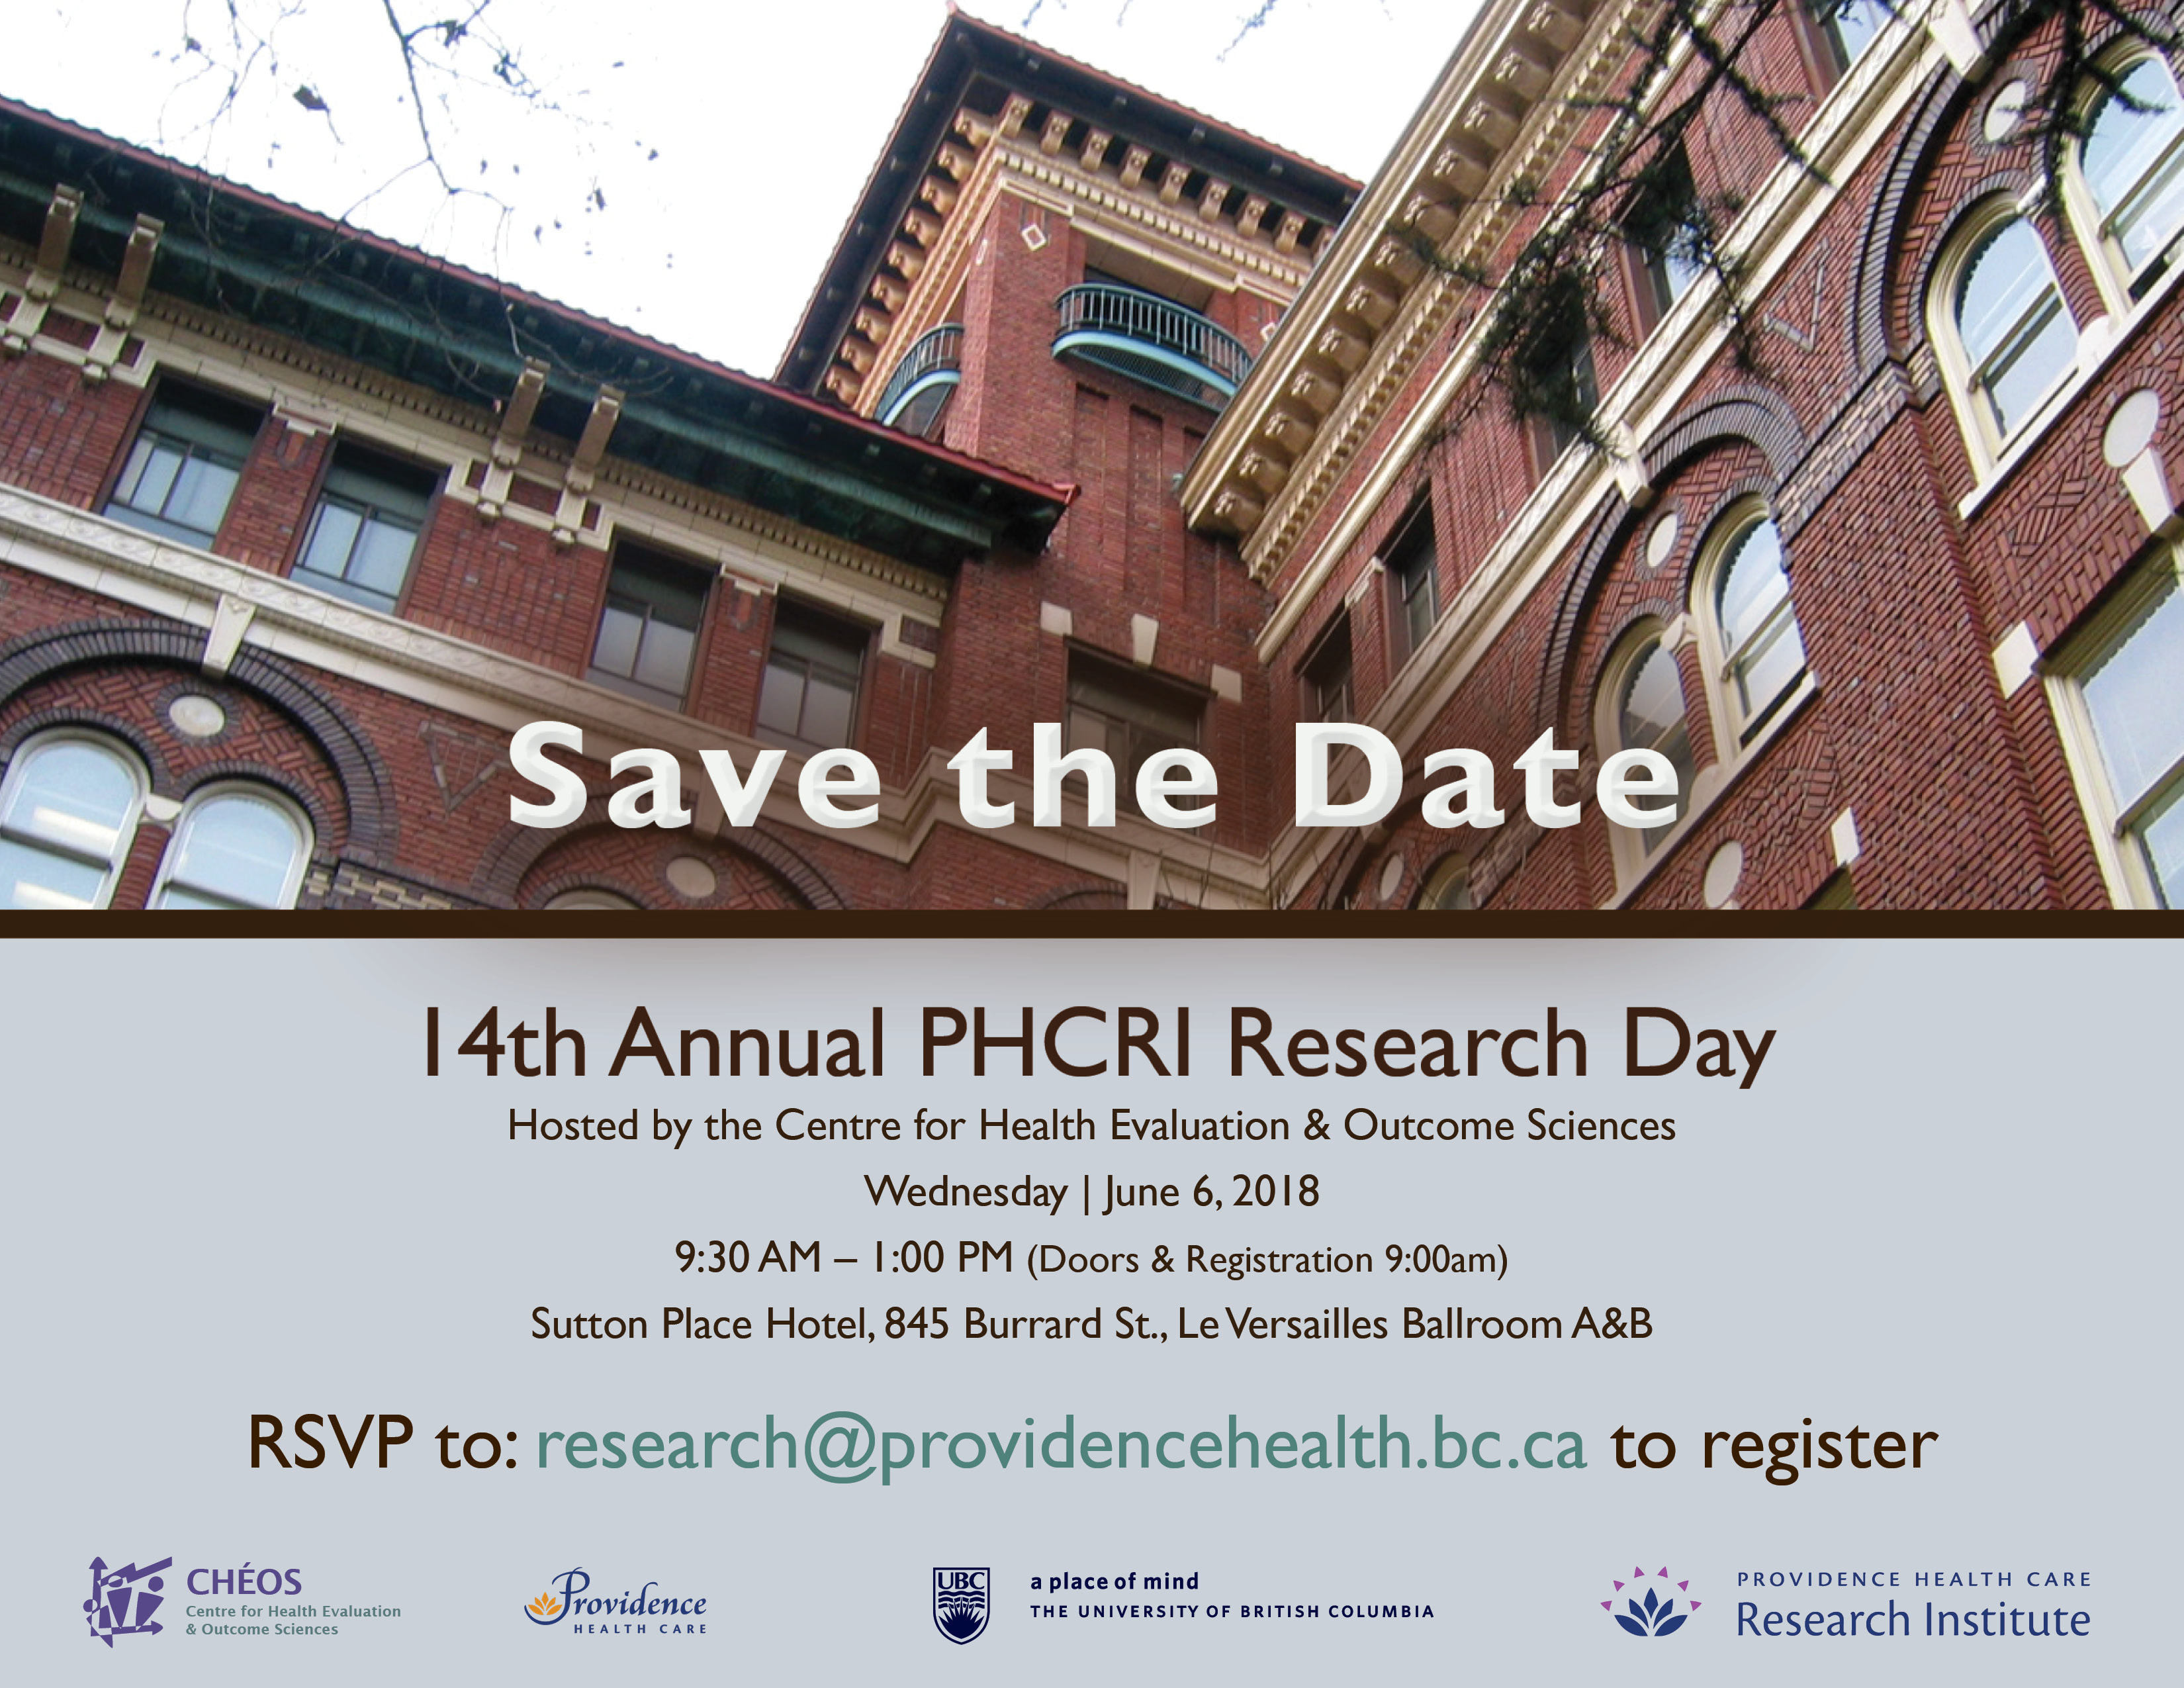 phcri.research.day.poster.landscape.2